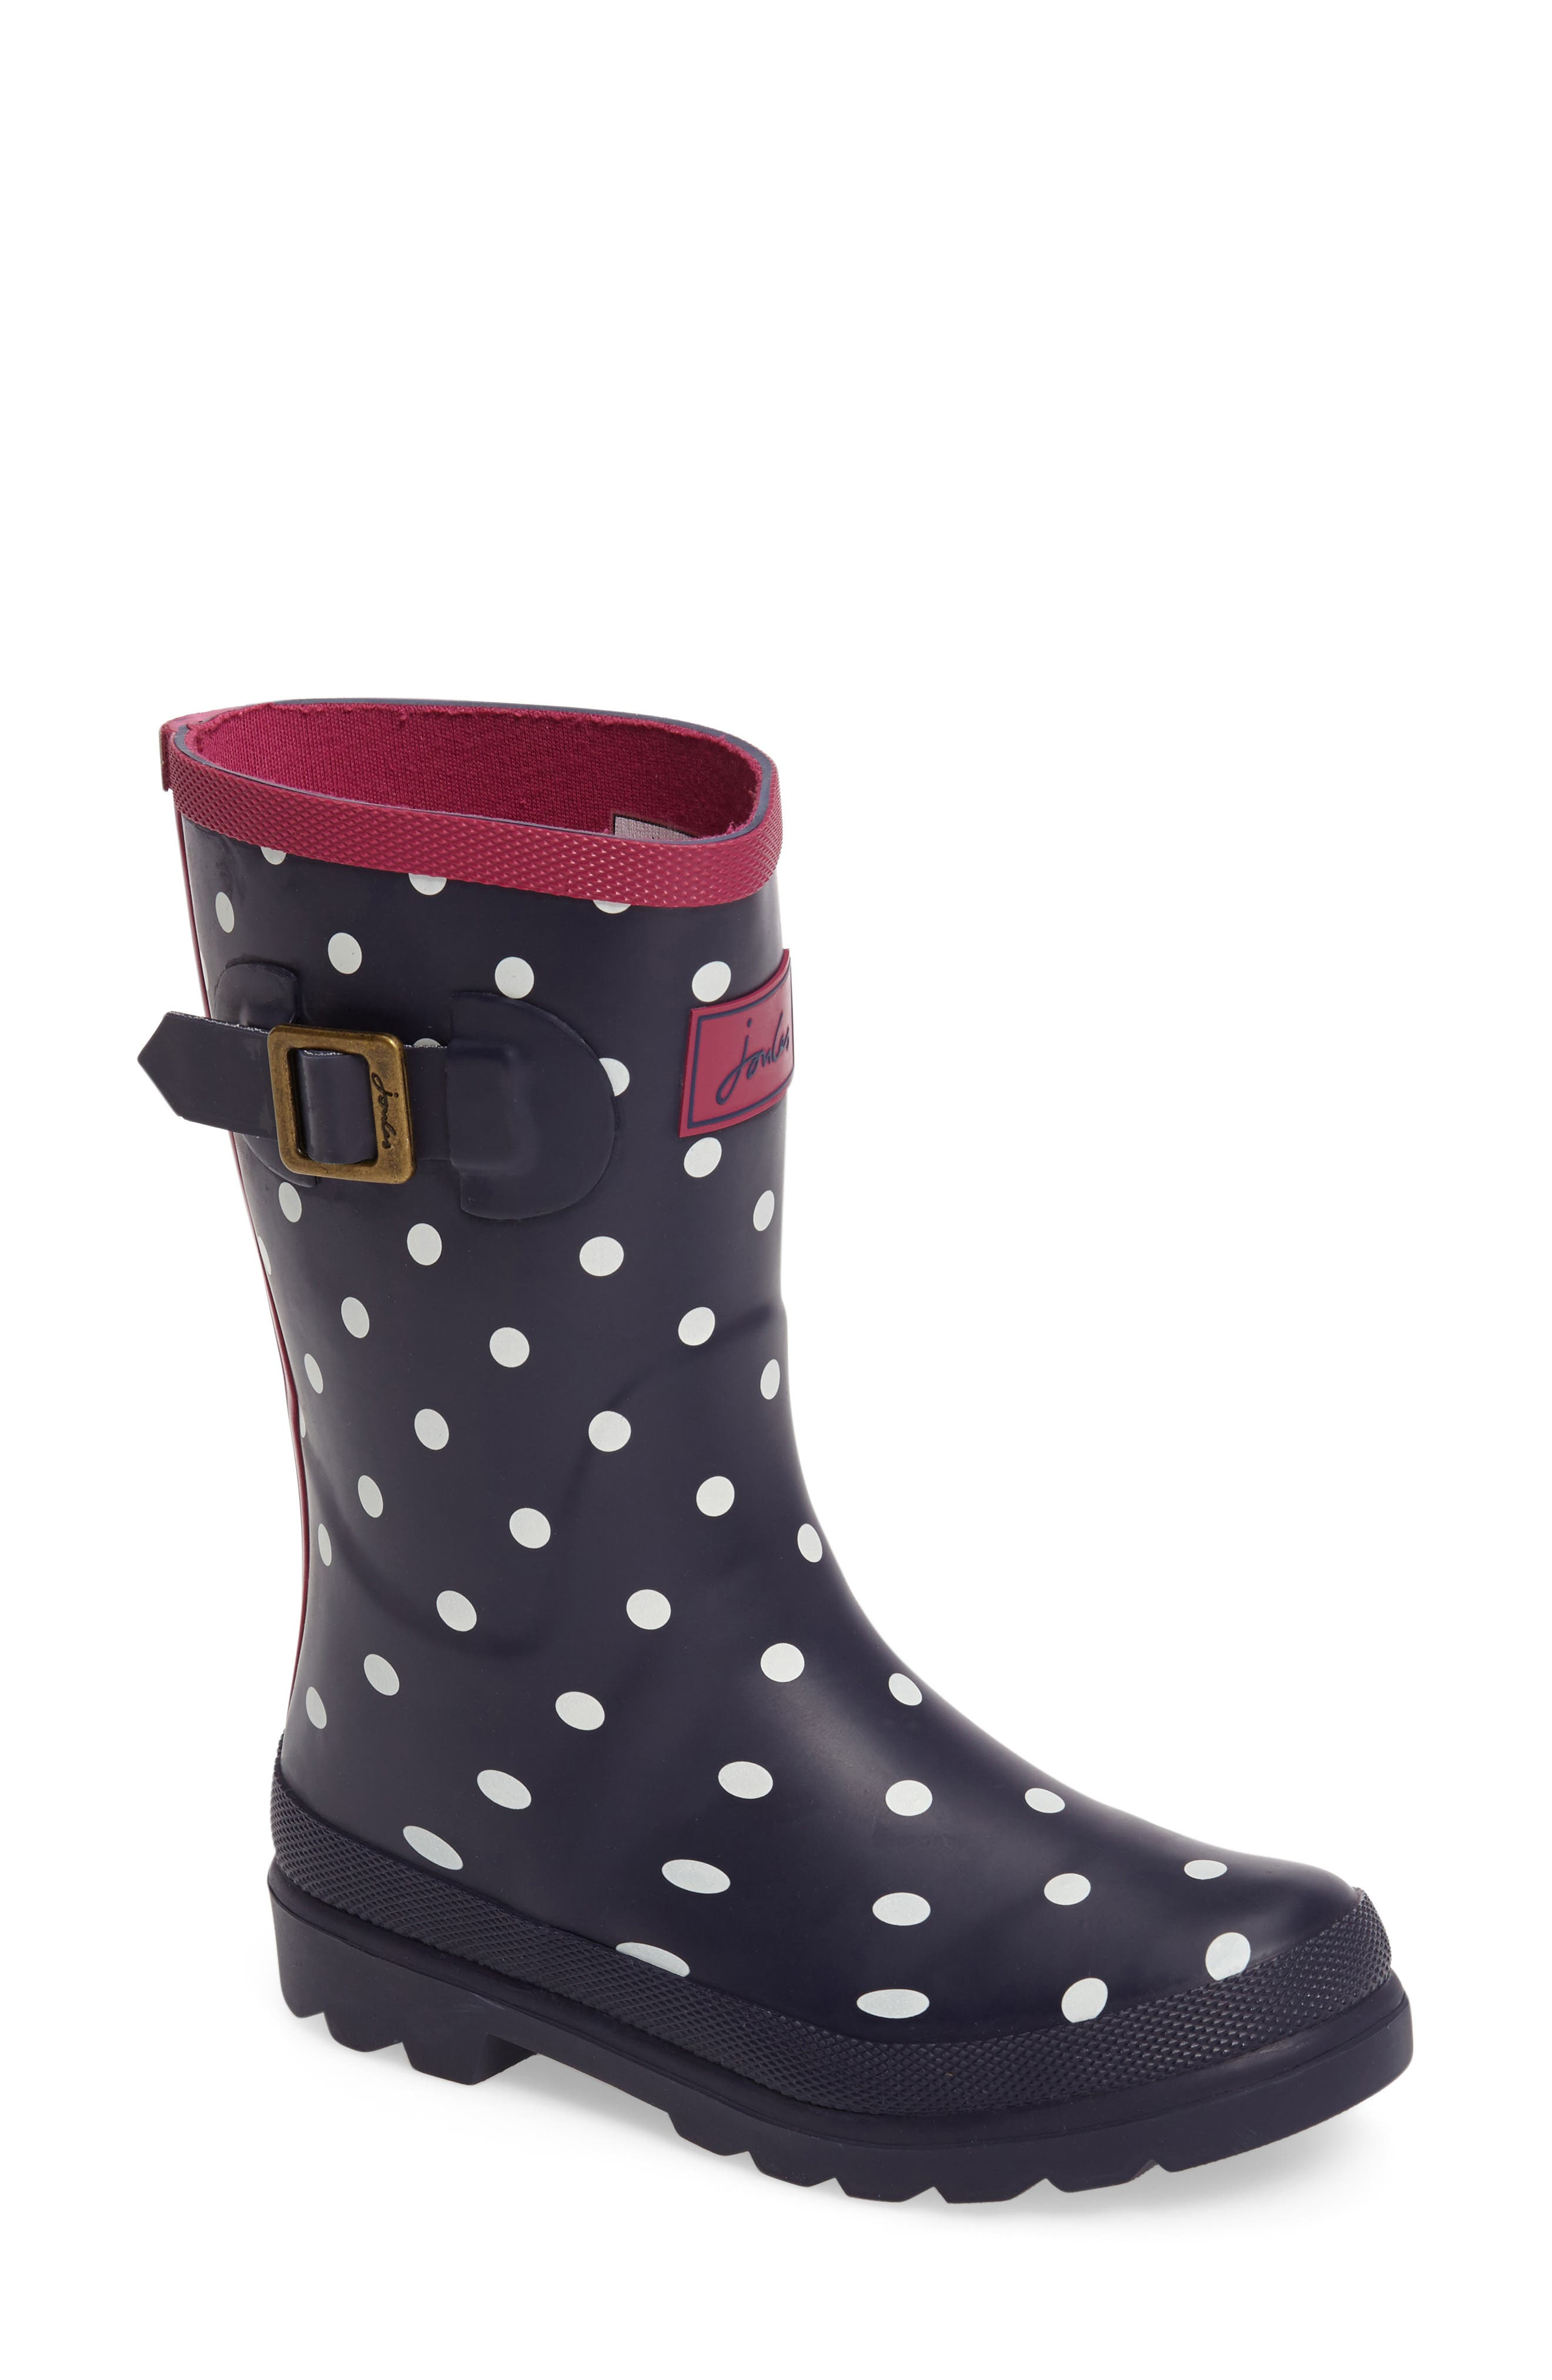 Joules 'Welly' Print Rain Boot (Toddler, Little Kid & Big Kid)